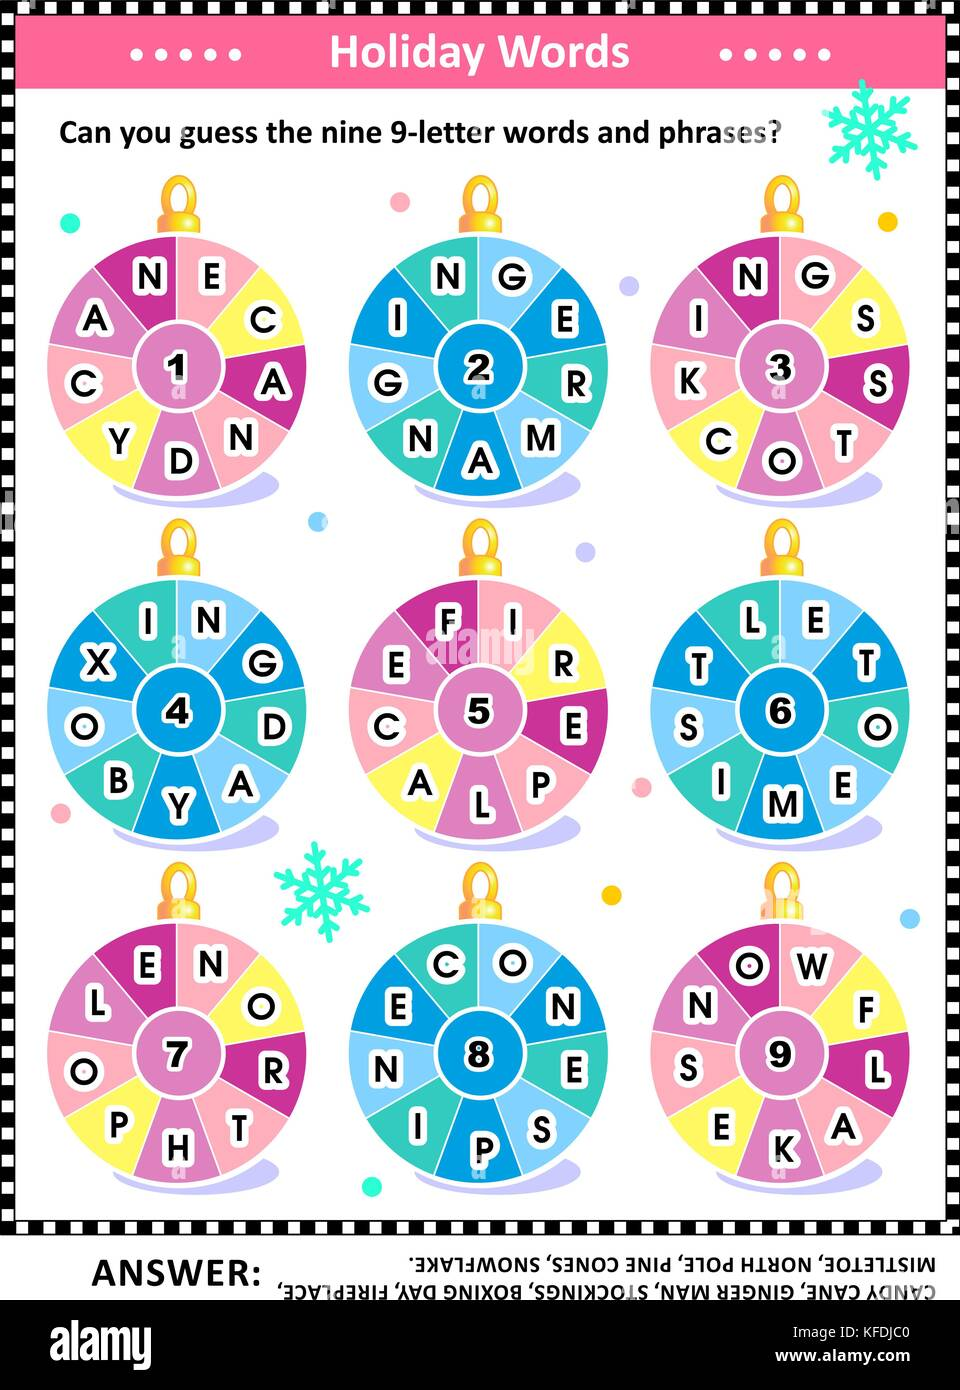 Christmas or New Year word puzzle (English language) with winter and holiday words written around the ornaments: - Stock Image